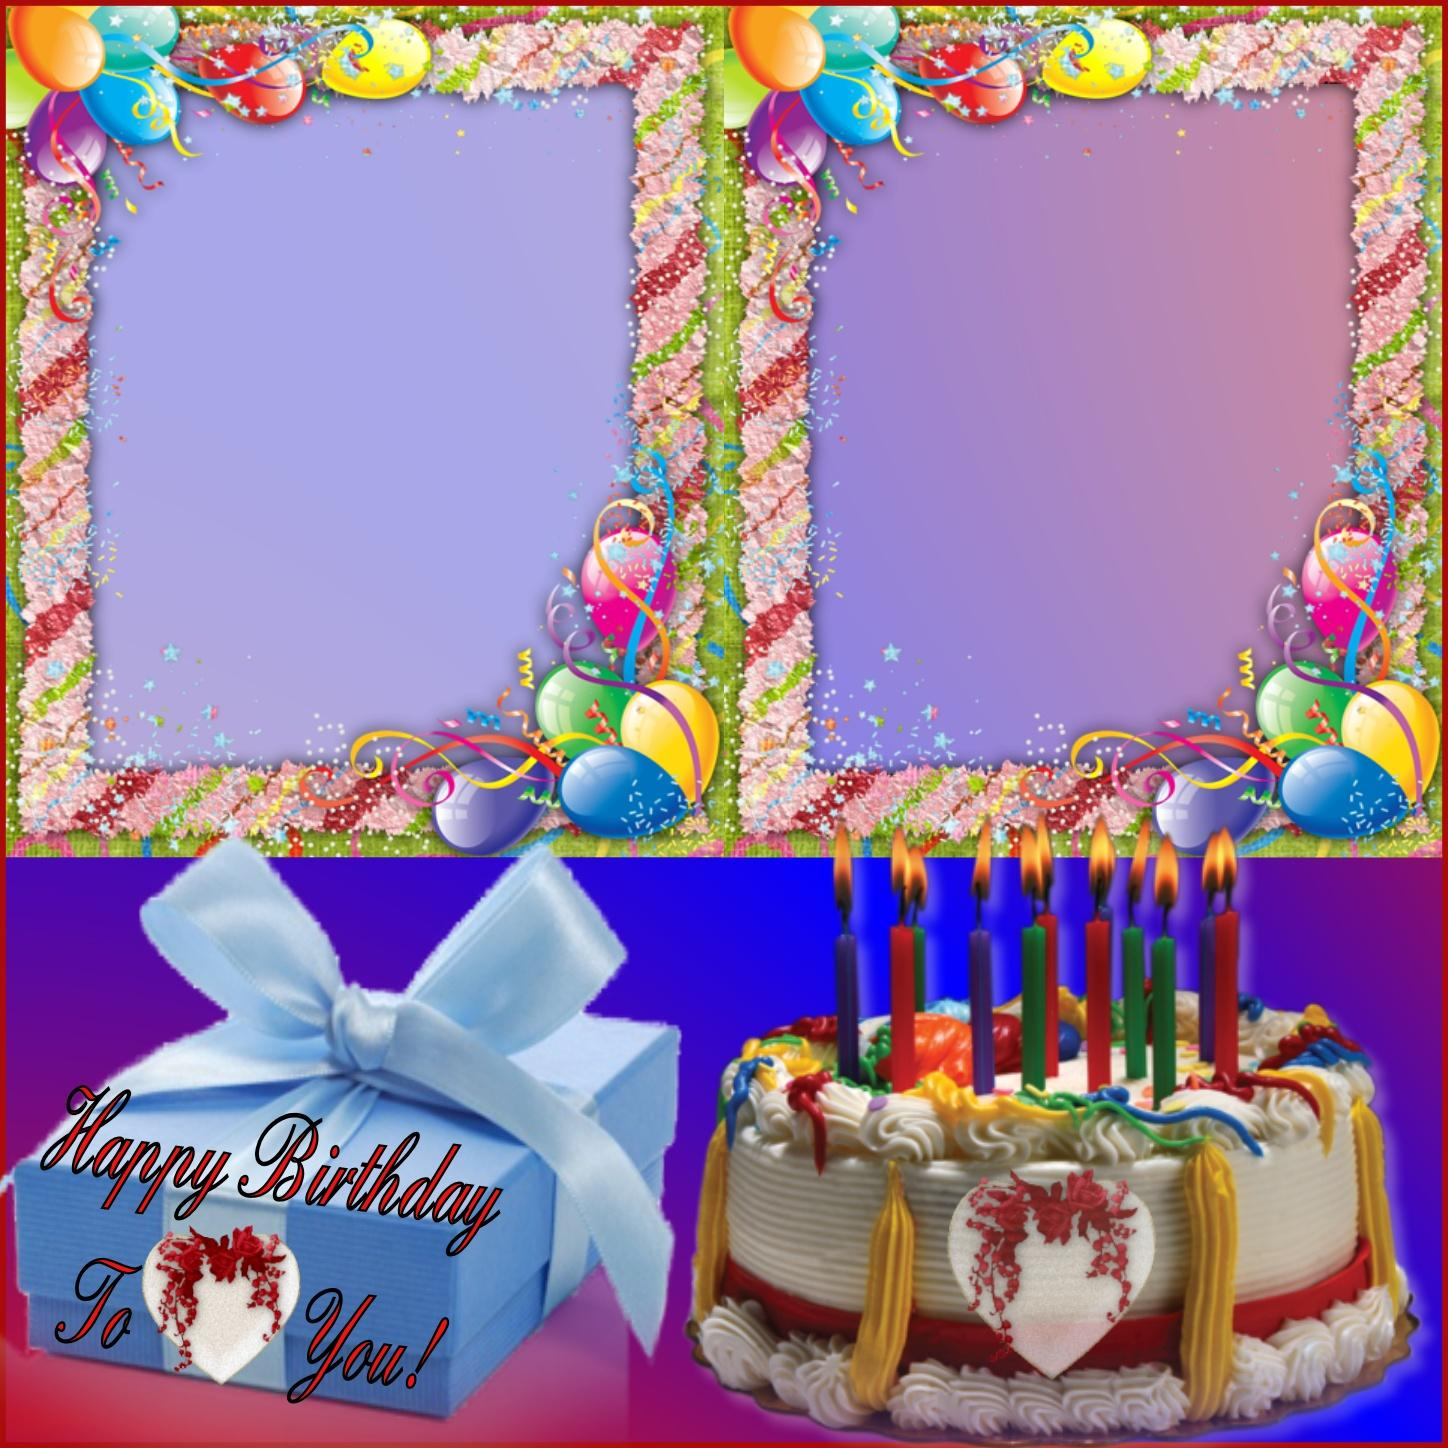 Imikimi Zo - Birthday Frames - Happy Birthday Twin Frames #Norafg62 ...